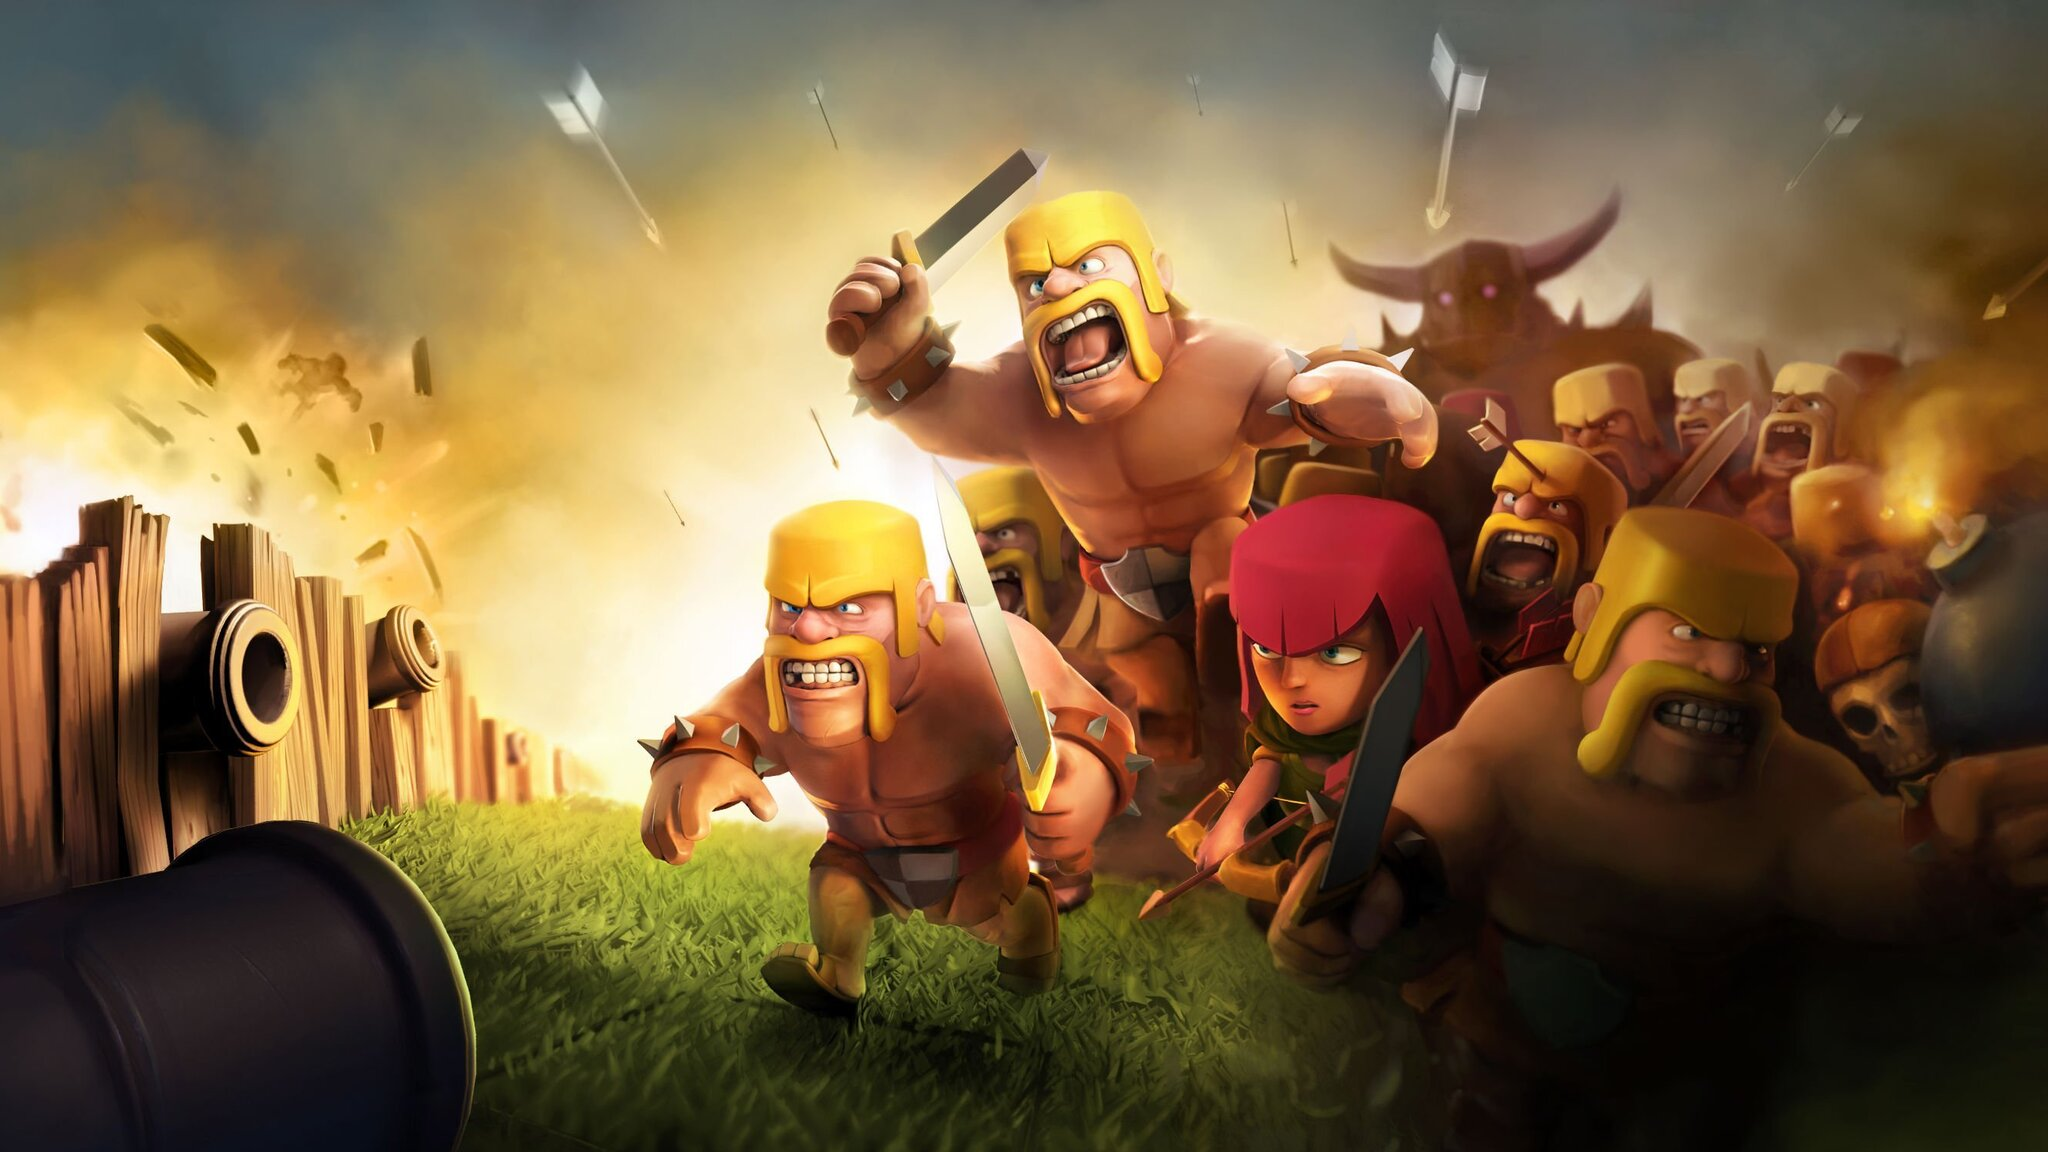 2048x1152 Clash Of Clans Hd 2048x1152 Resolution Hd 4k